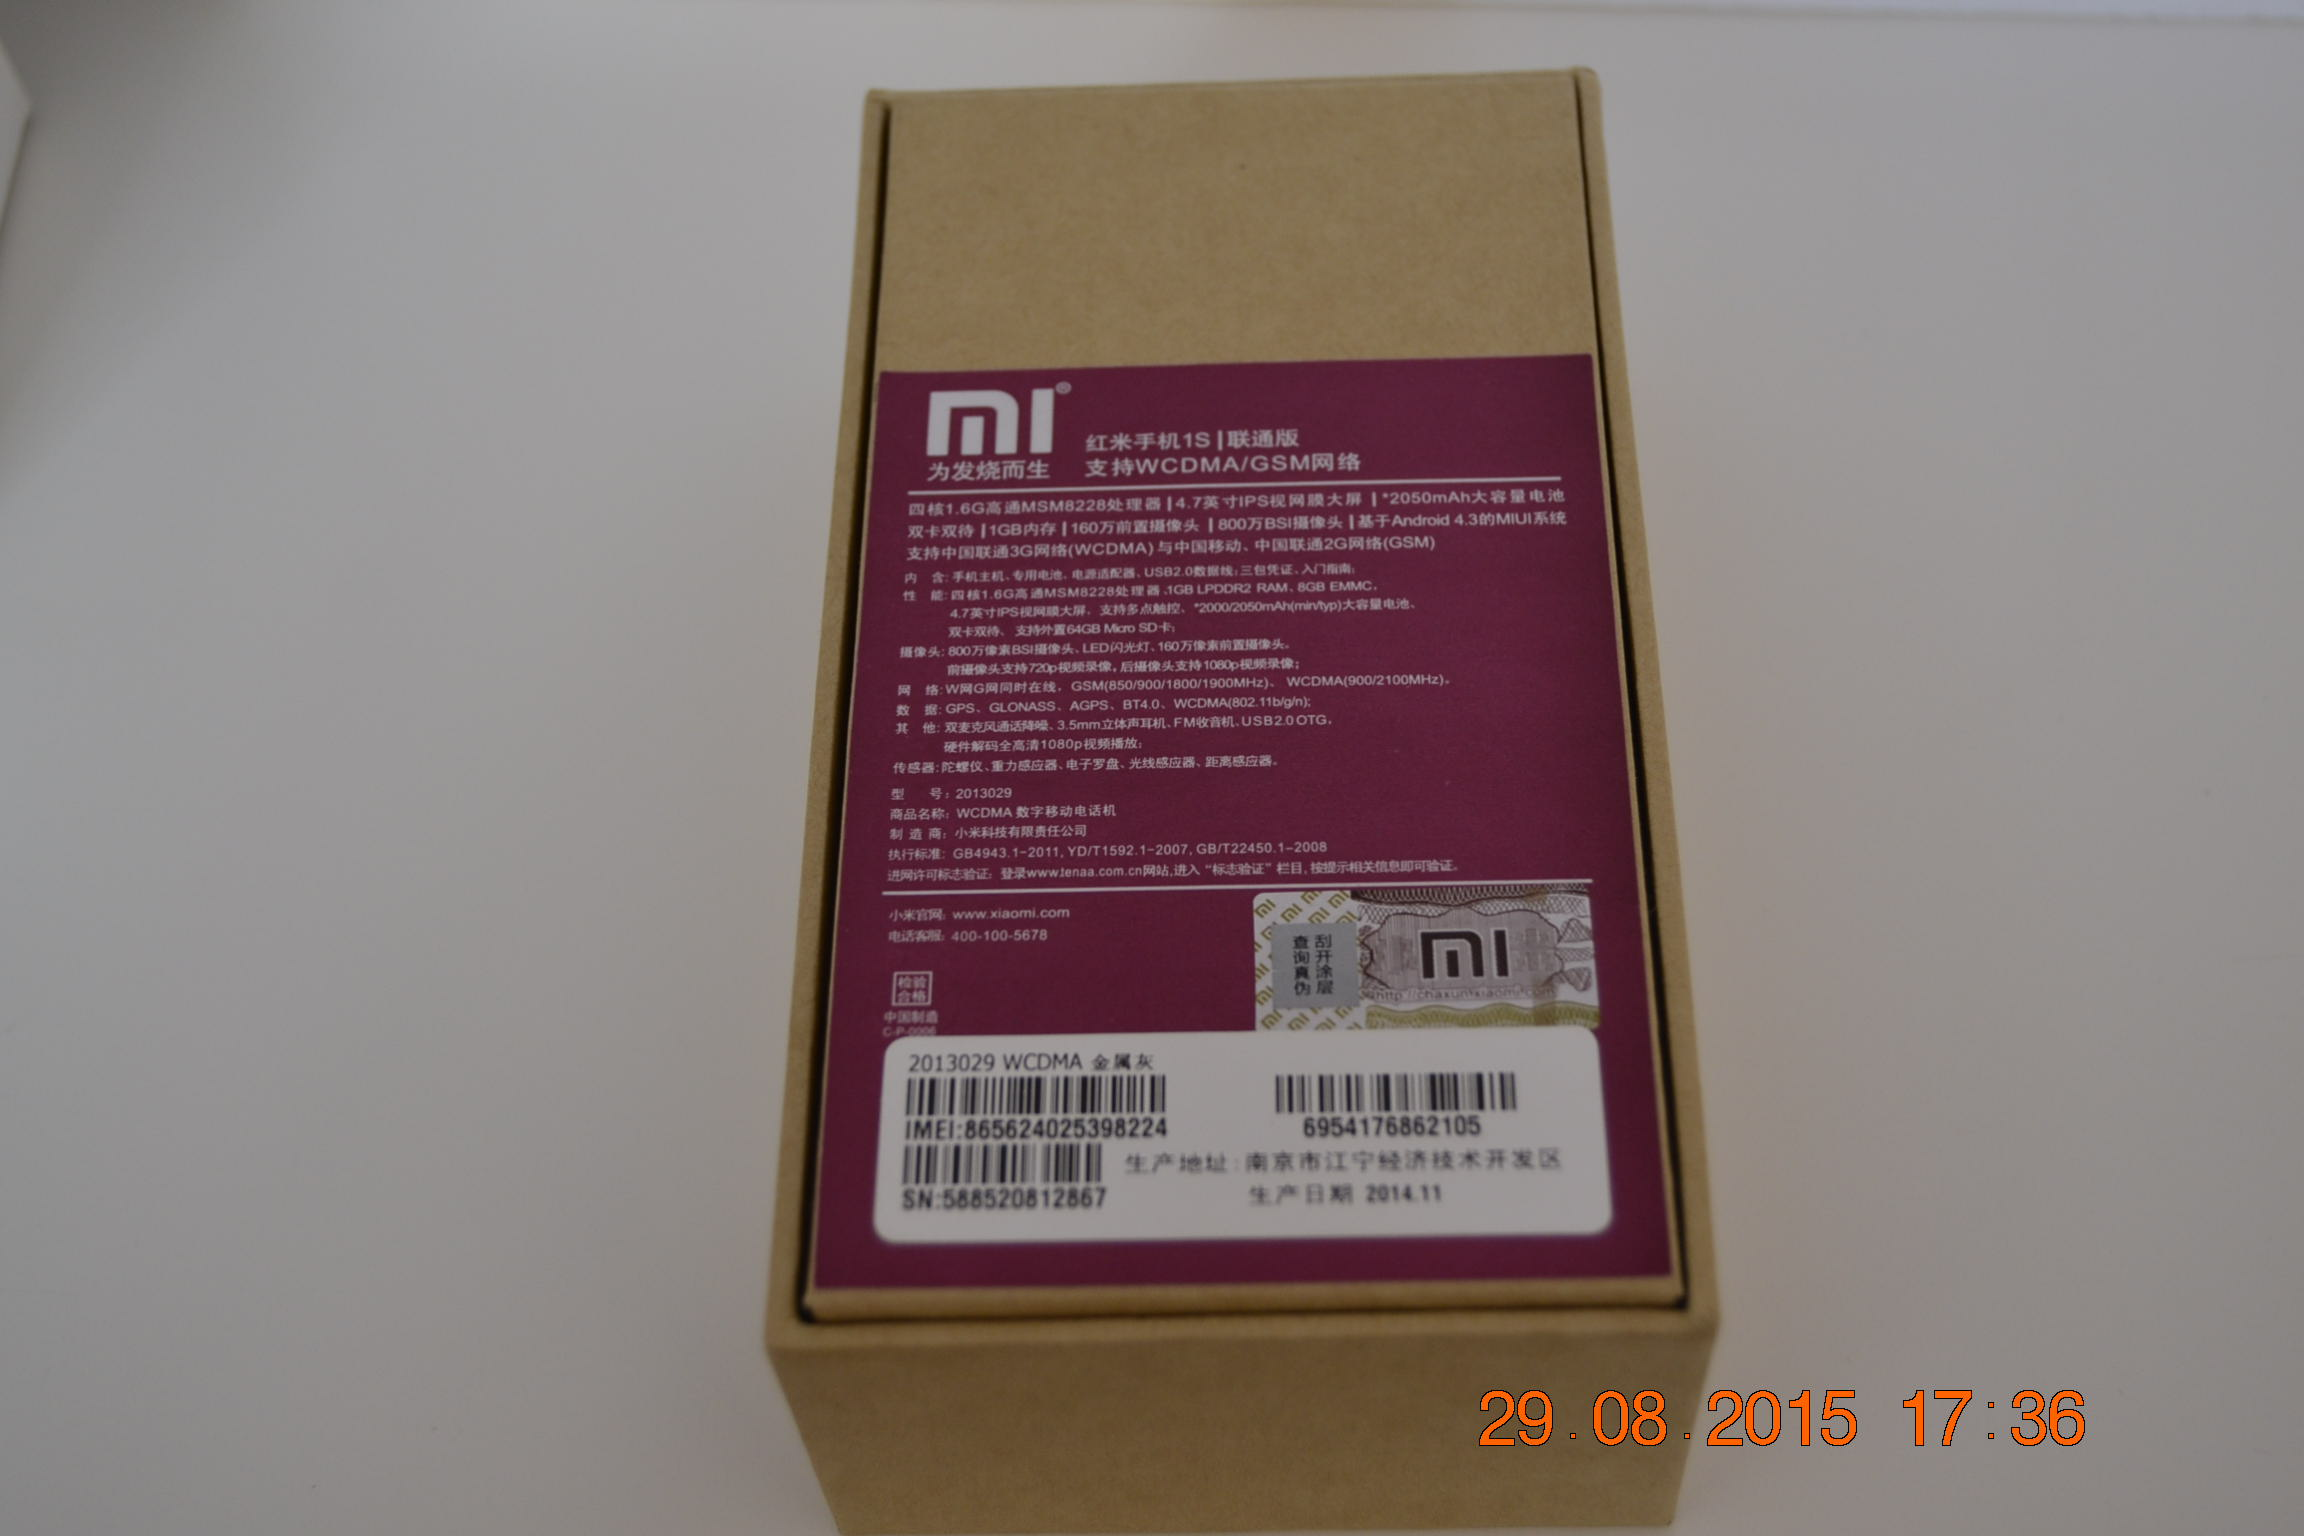 Moviles Libres Xiaomi Telefono Movil Original Xiaomi 1s Red Rice Negro Libre